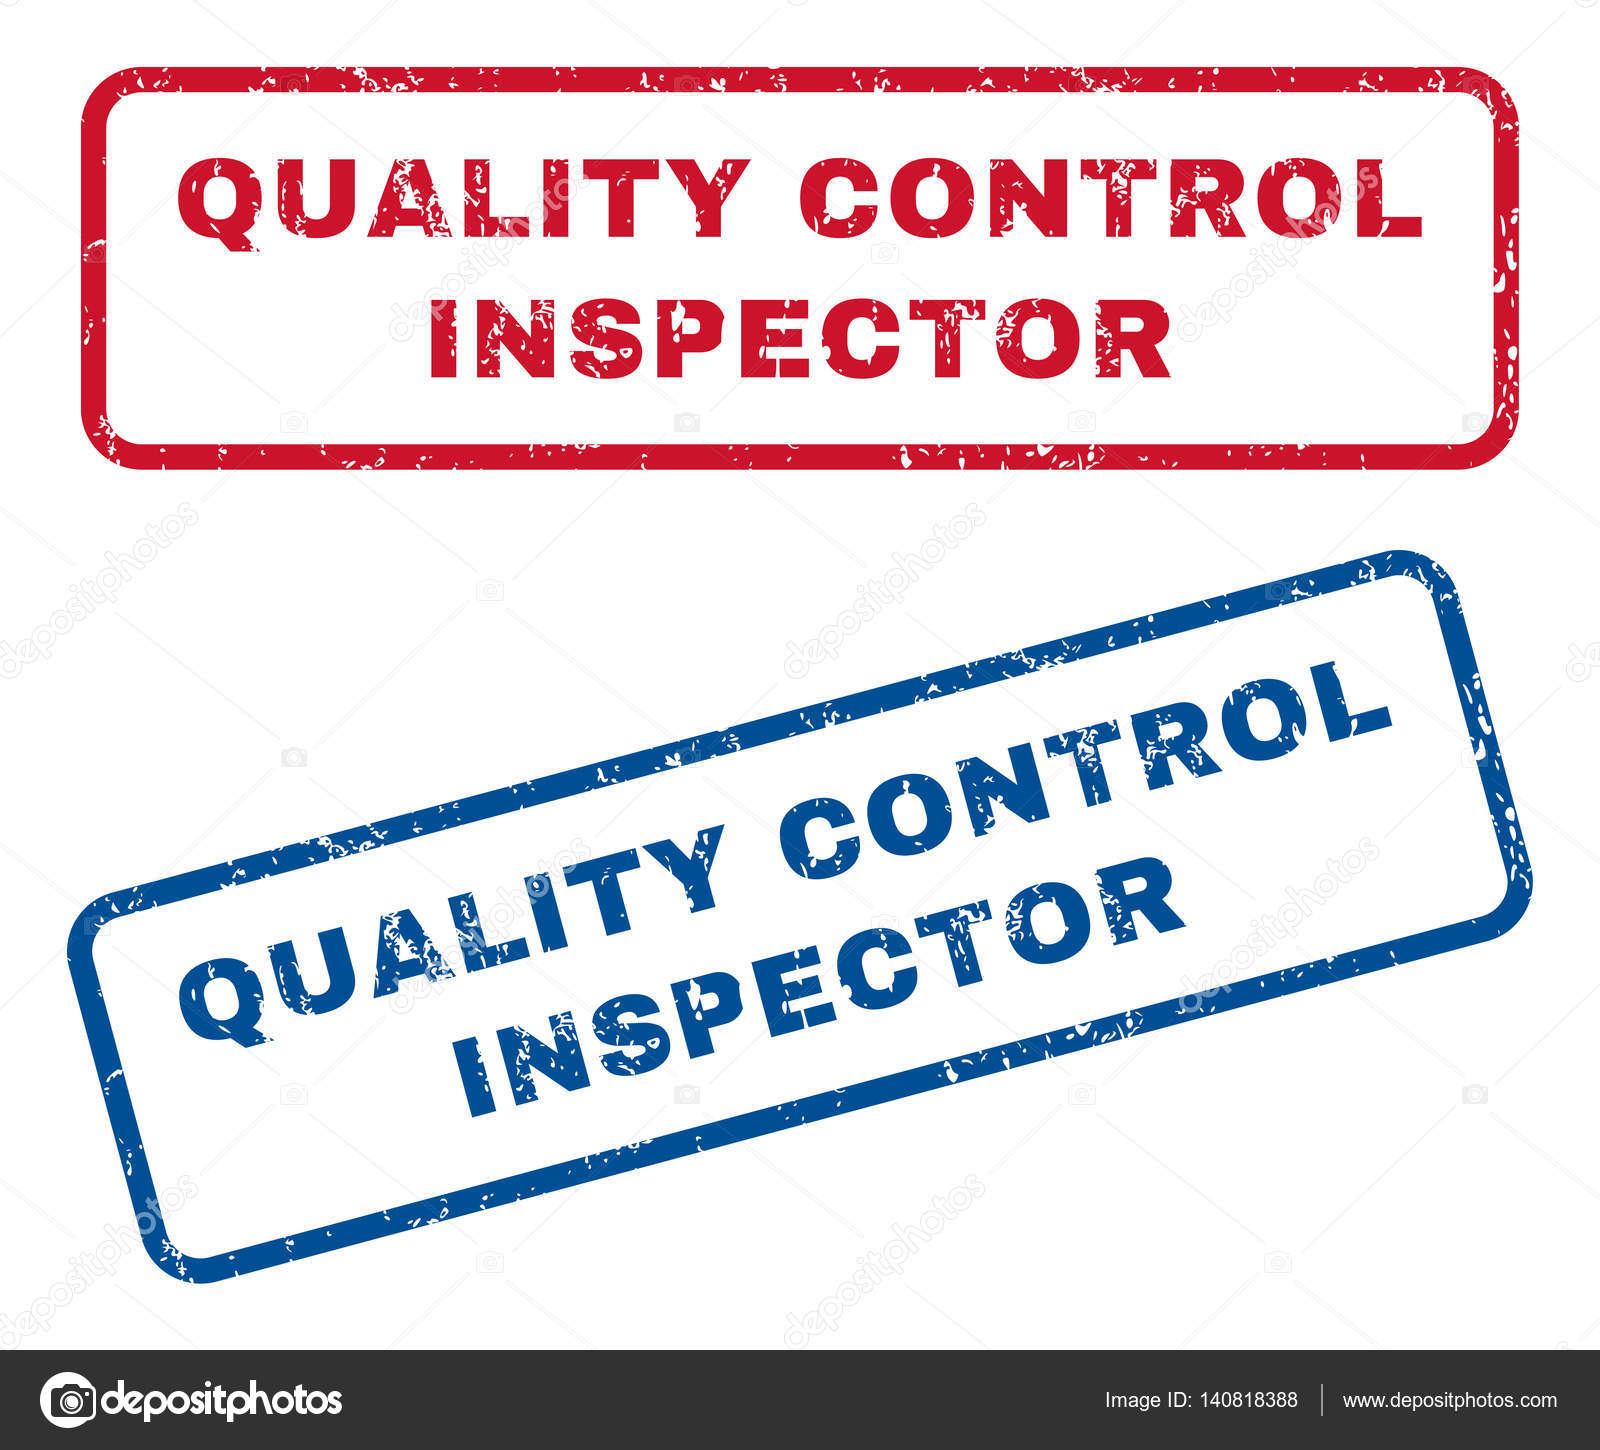 Image result for Quality Control Inspector